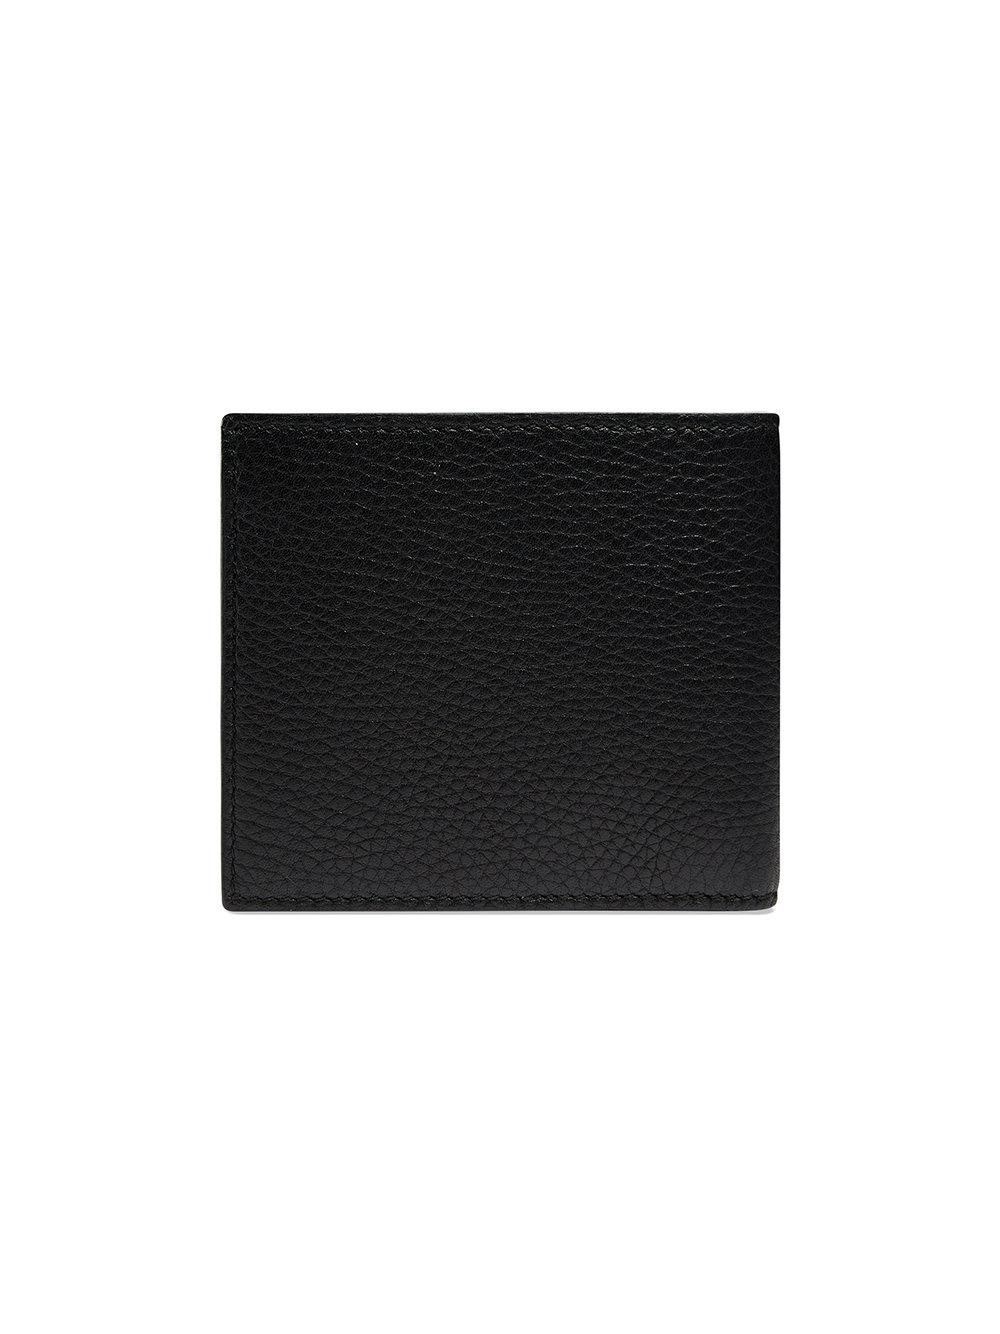 982b70e9b2ec Lyst - Gucci Leather Wallet in Black for Men - Save 9%